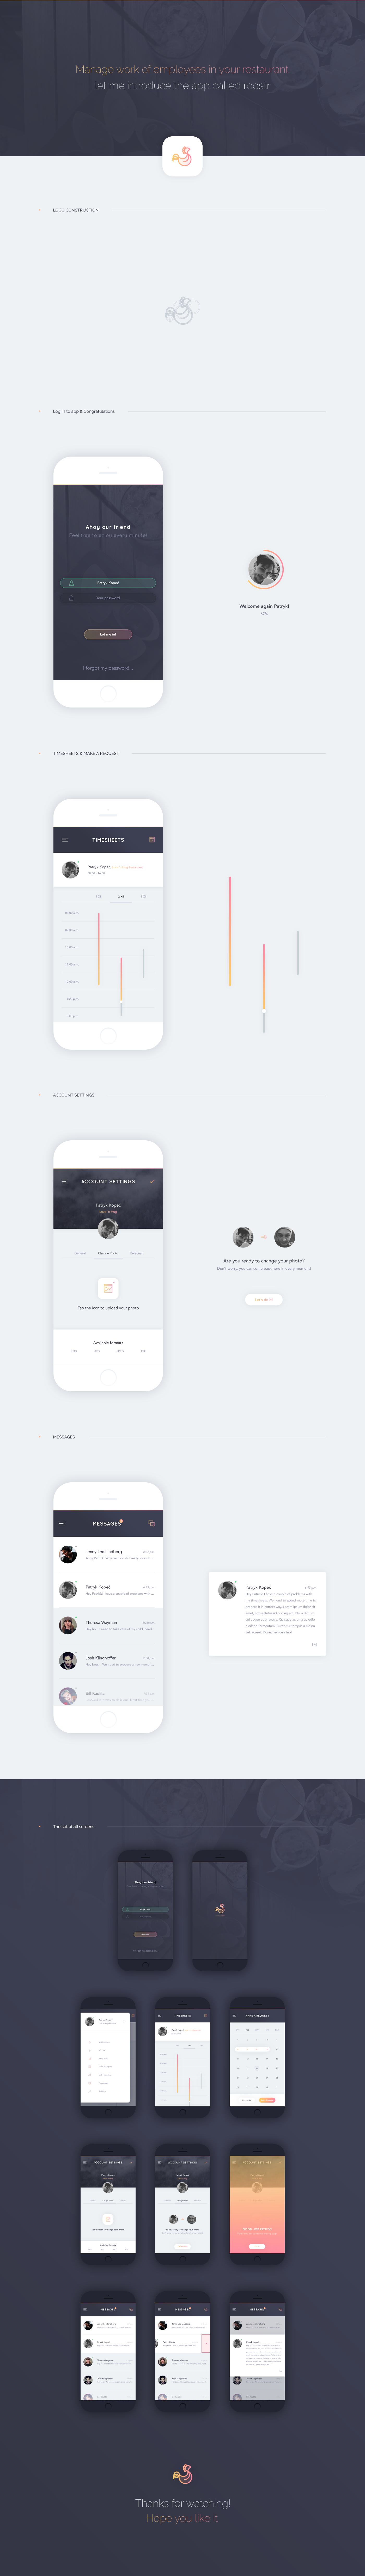 Roostr - Mobile App by encore13